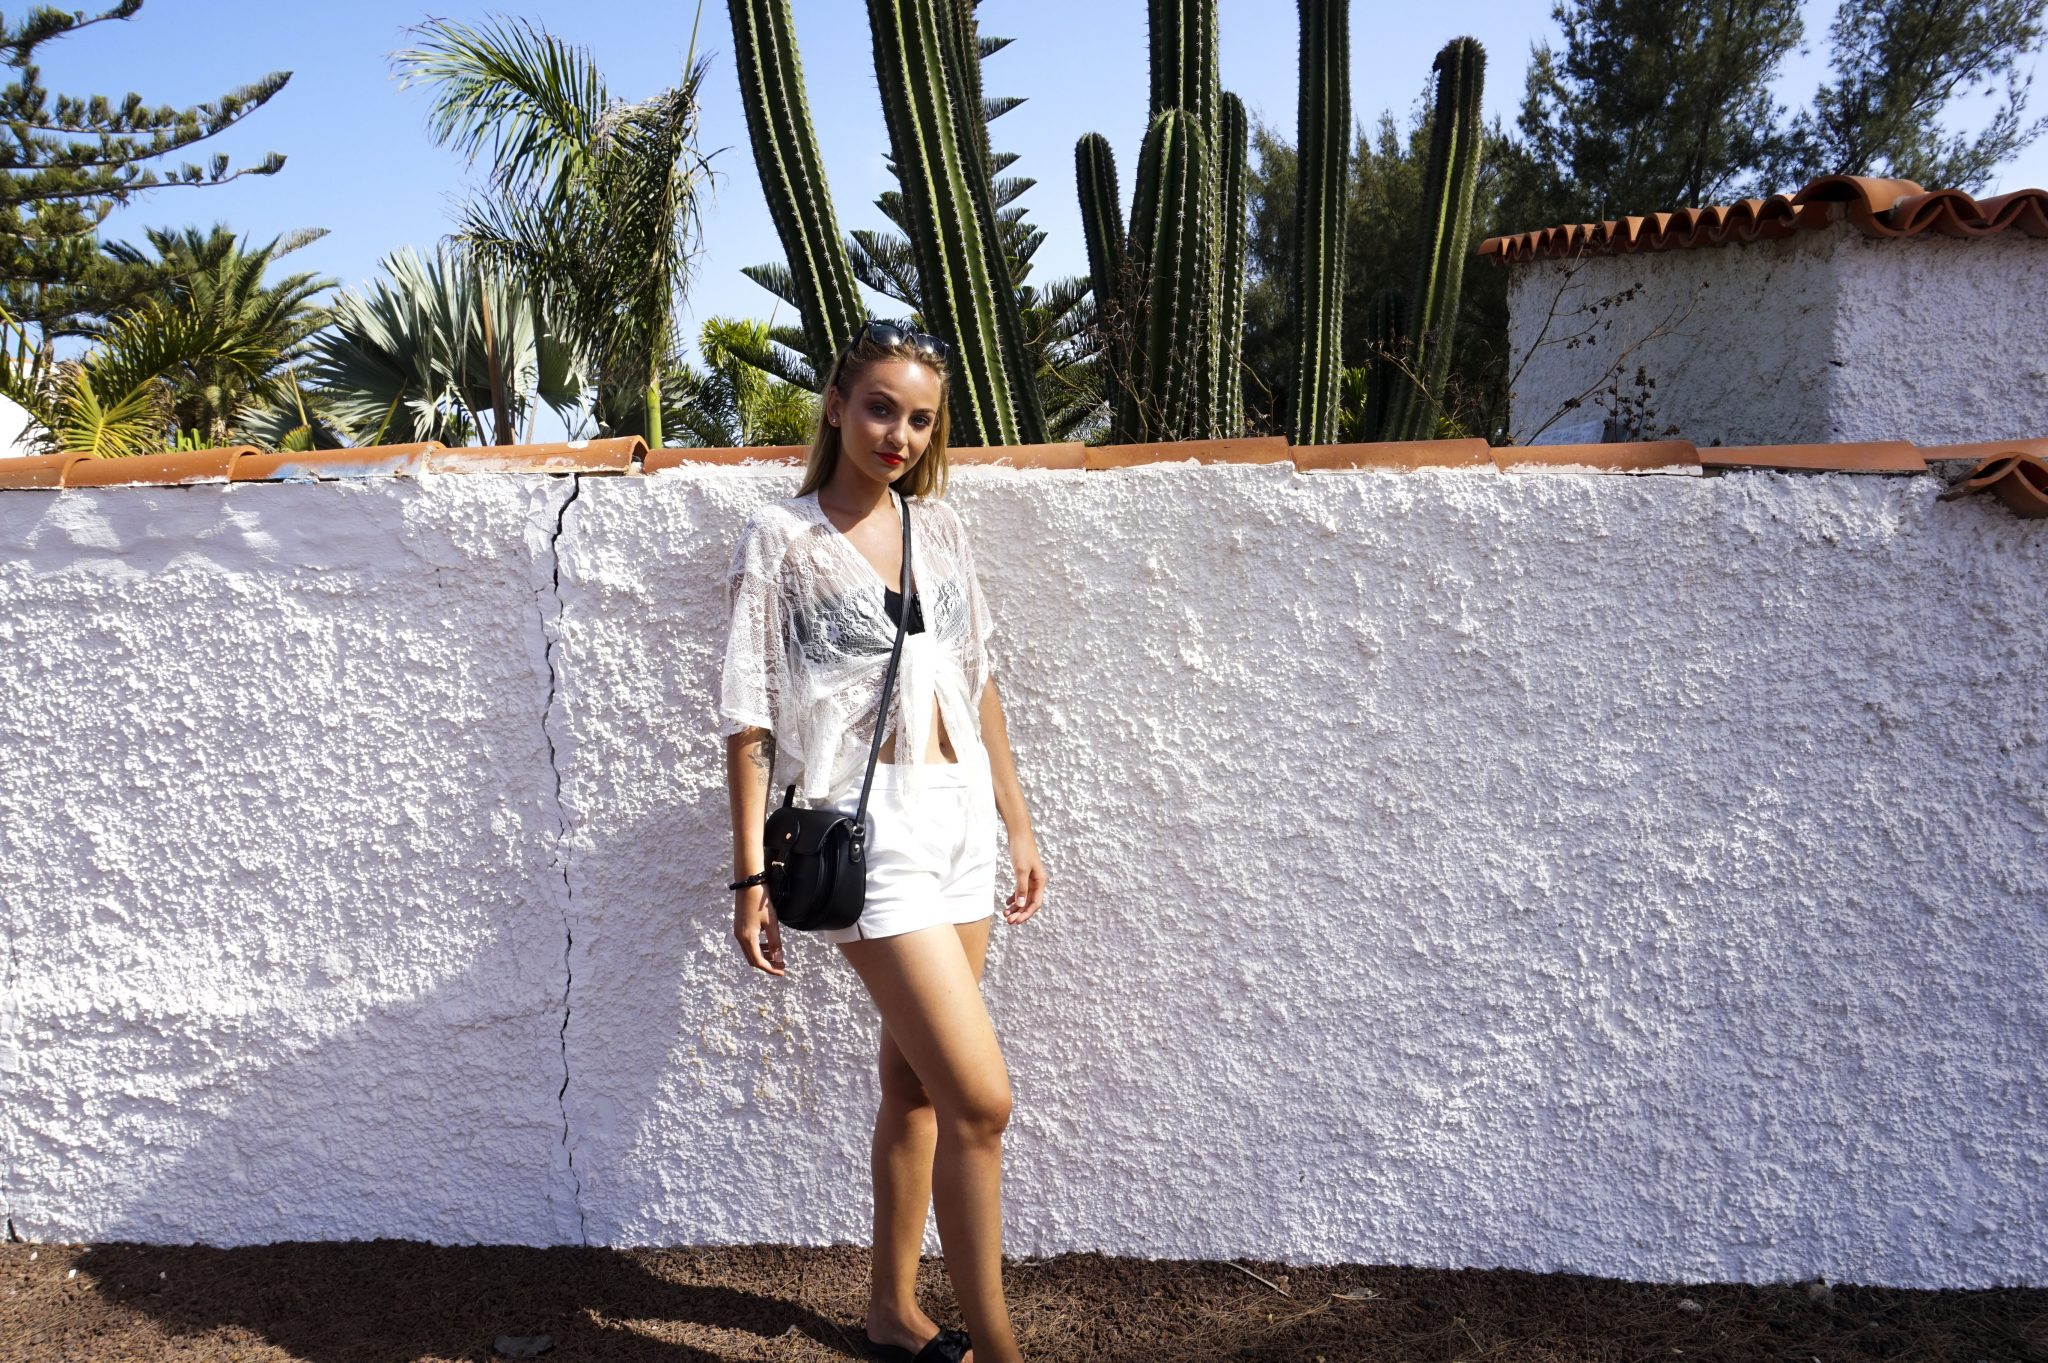 white and black outfit photo from gran canaria